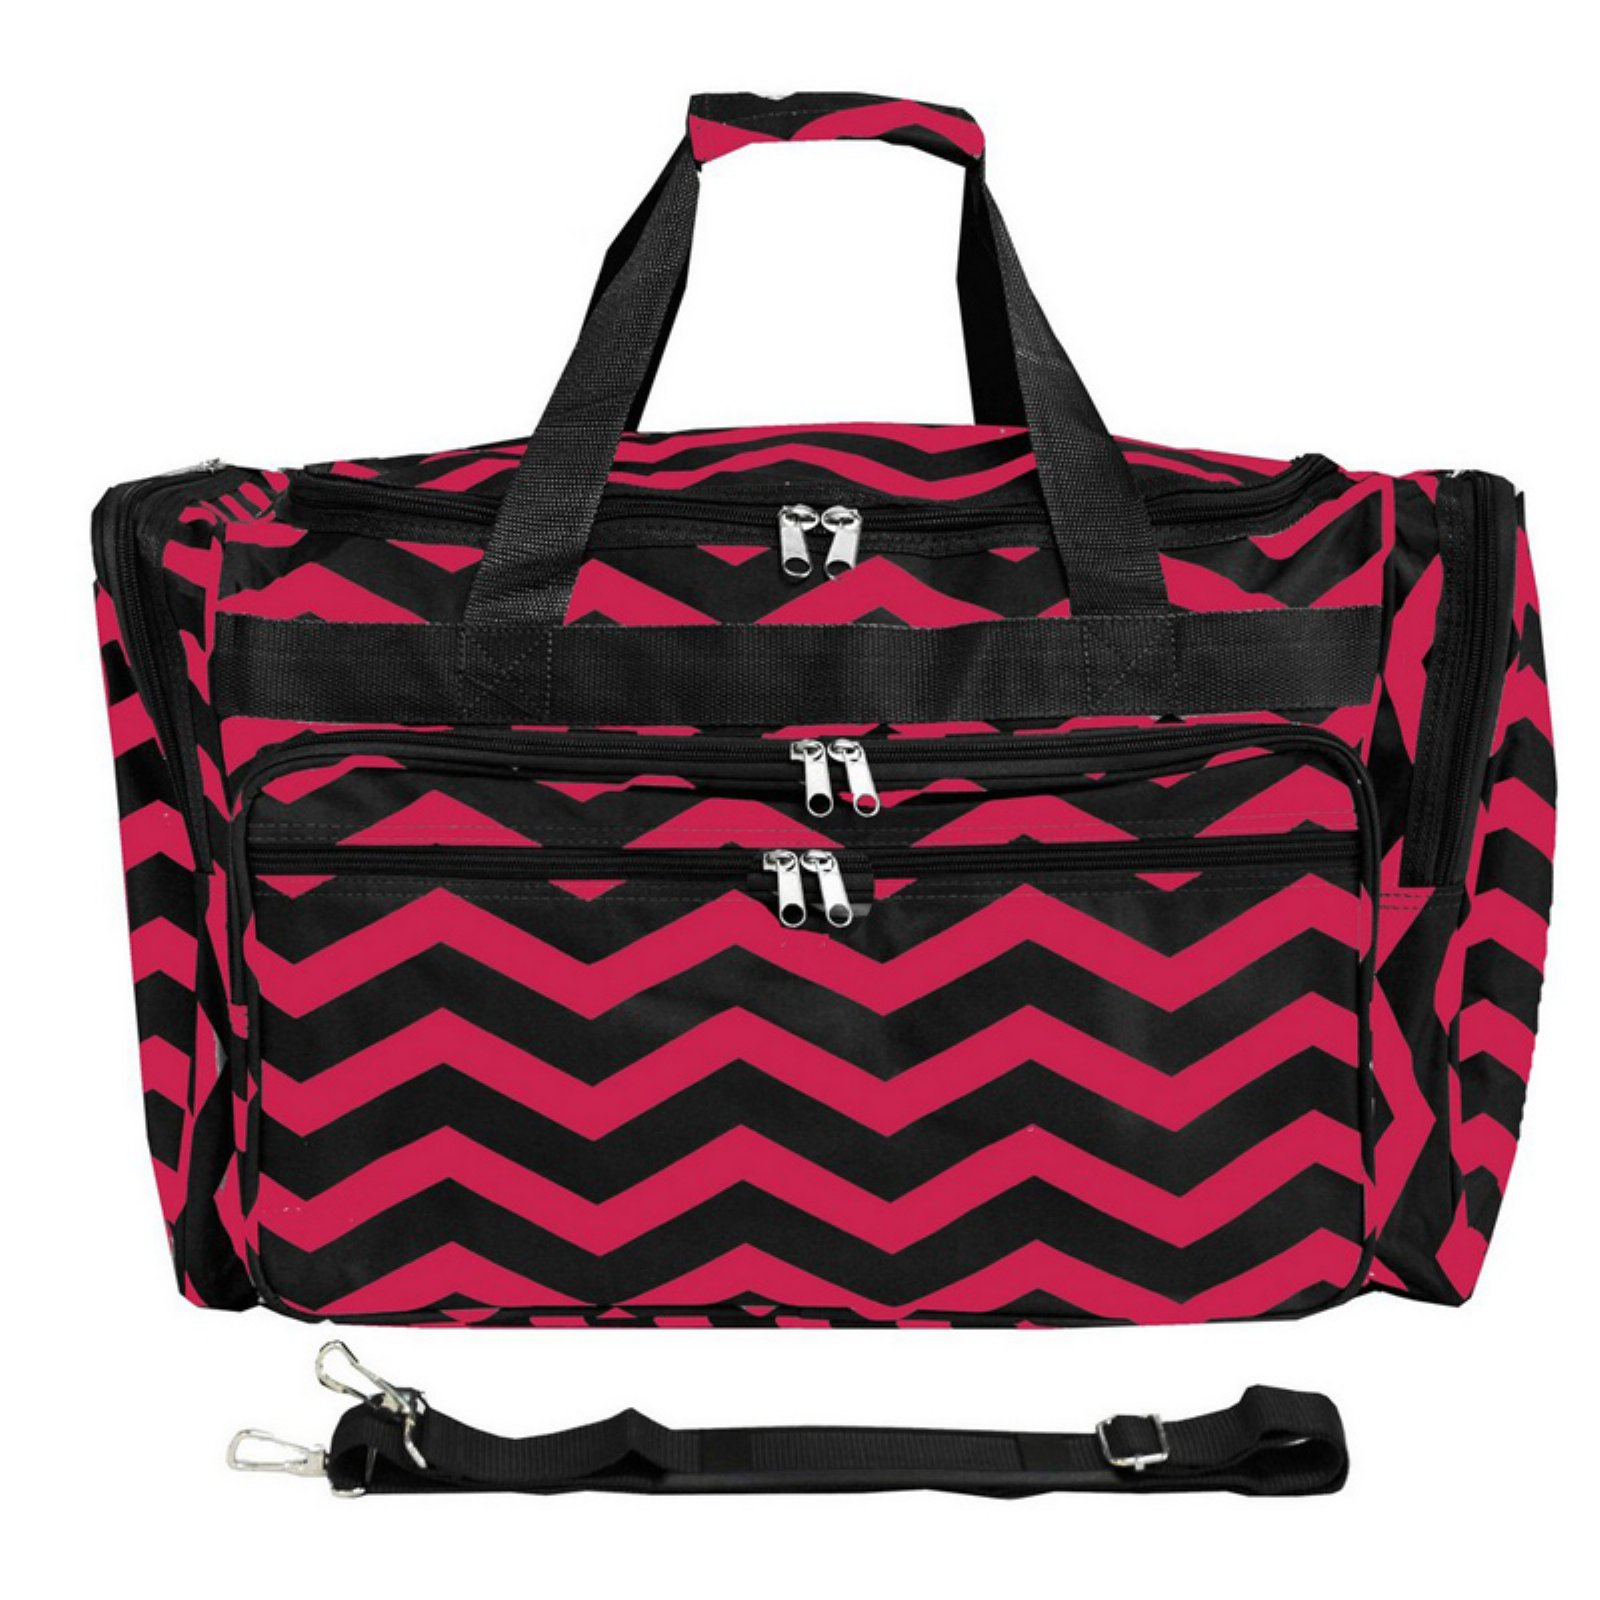 World Traveler Chevron 22 in. Travel Duffel Bag